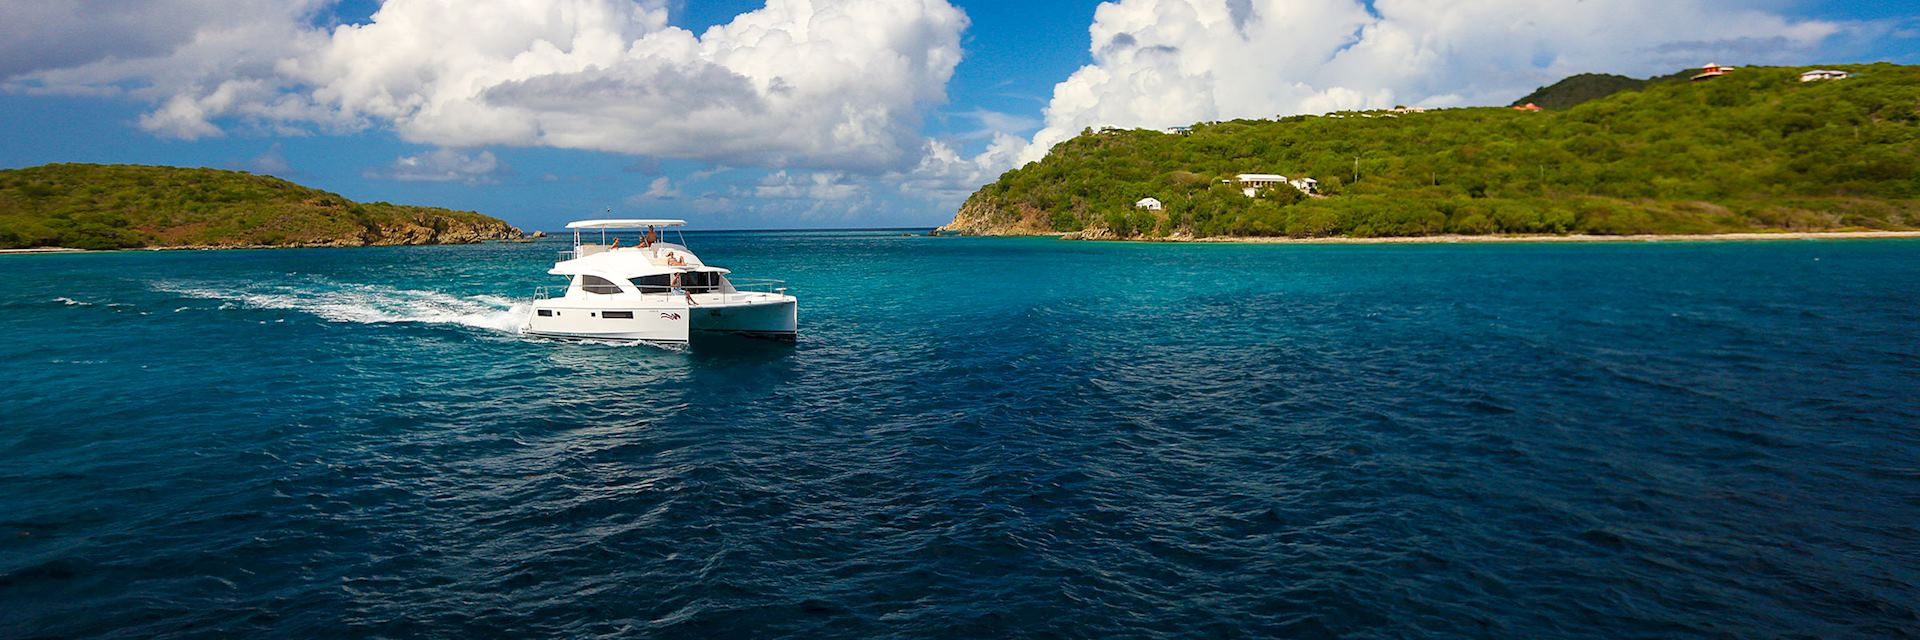 The Moorings 514 Power Catamaran, Grenada